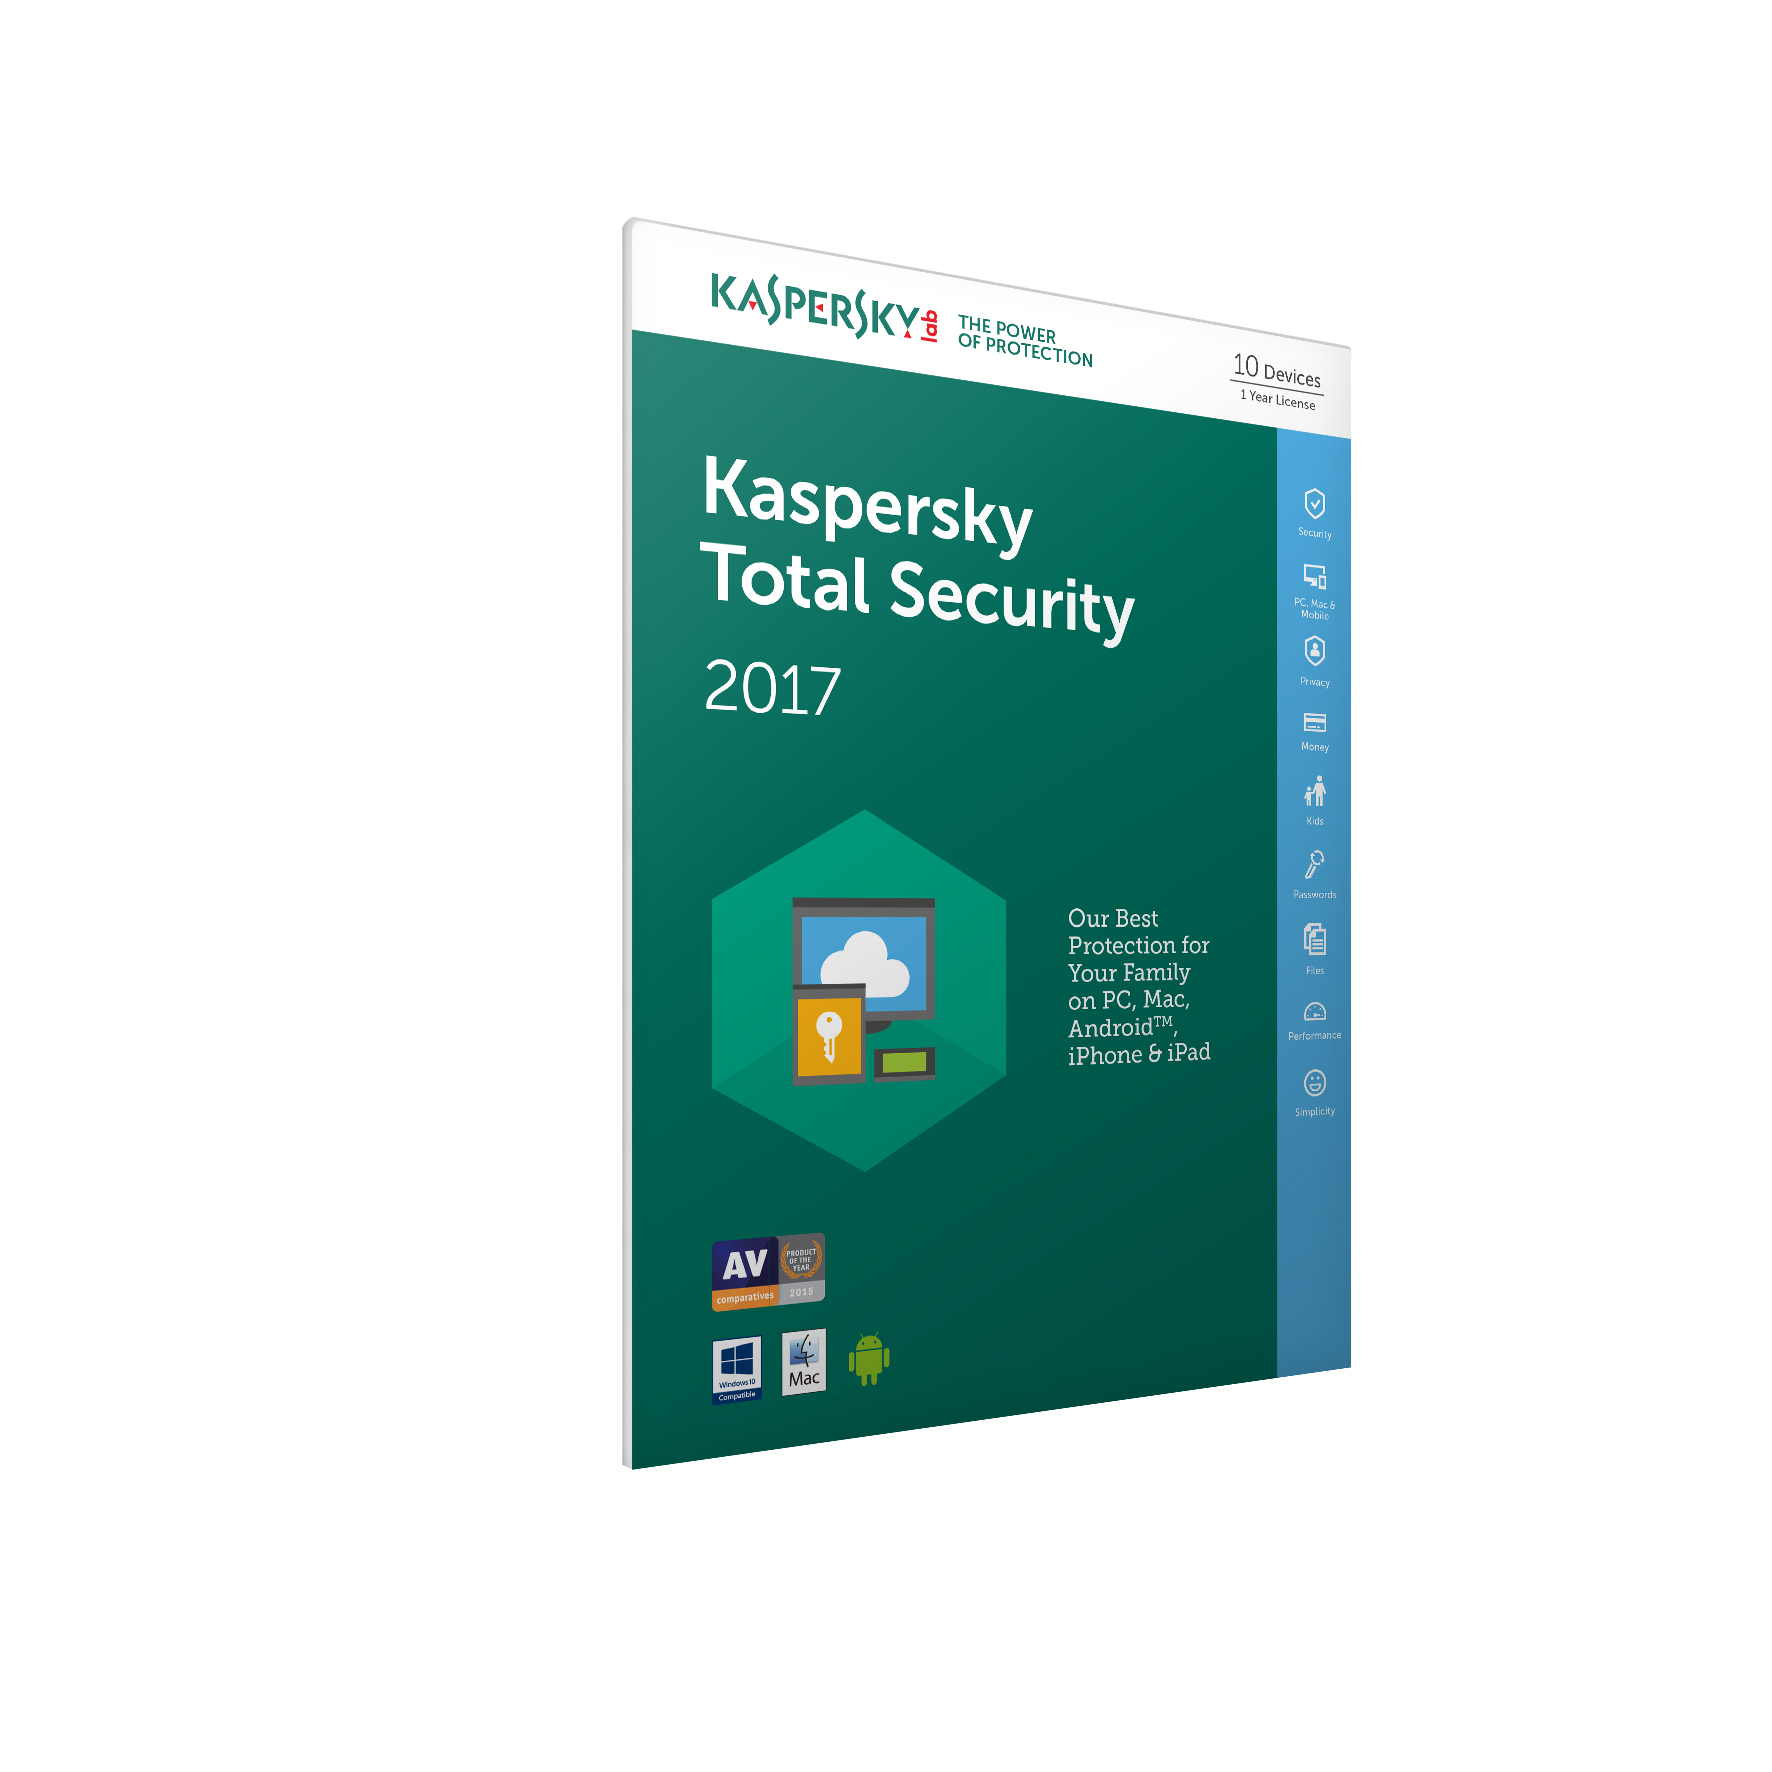 Kaspersky Lab Kaspersky Total Security 2017 - 10 Devices 1 Year (Frustration Free Packaging)